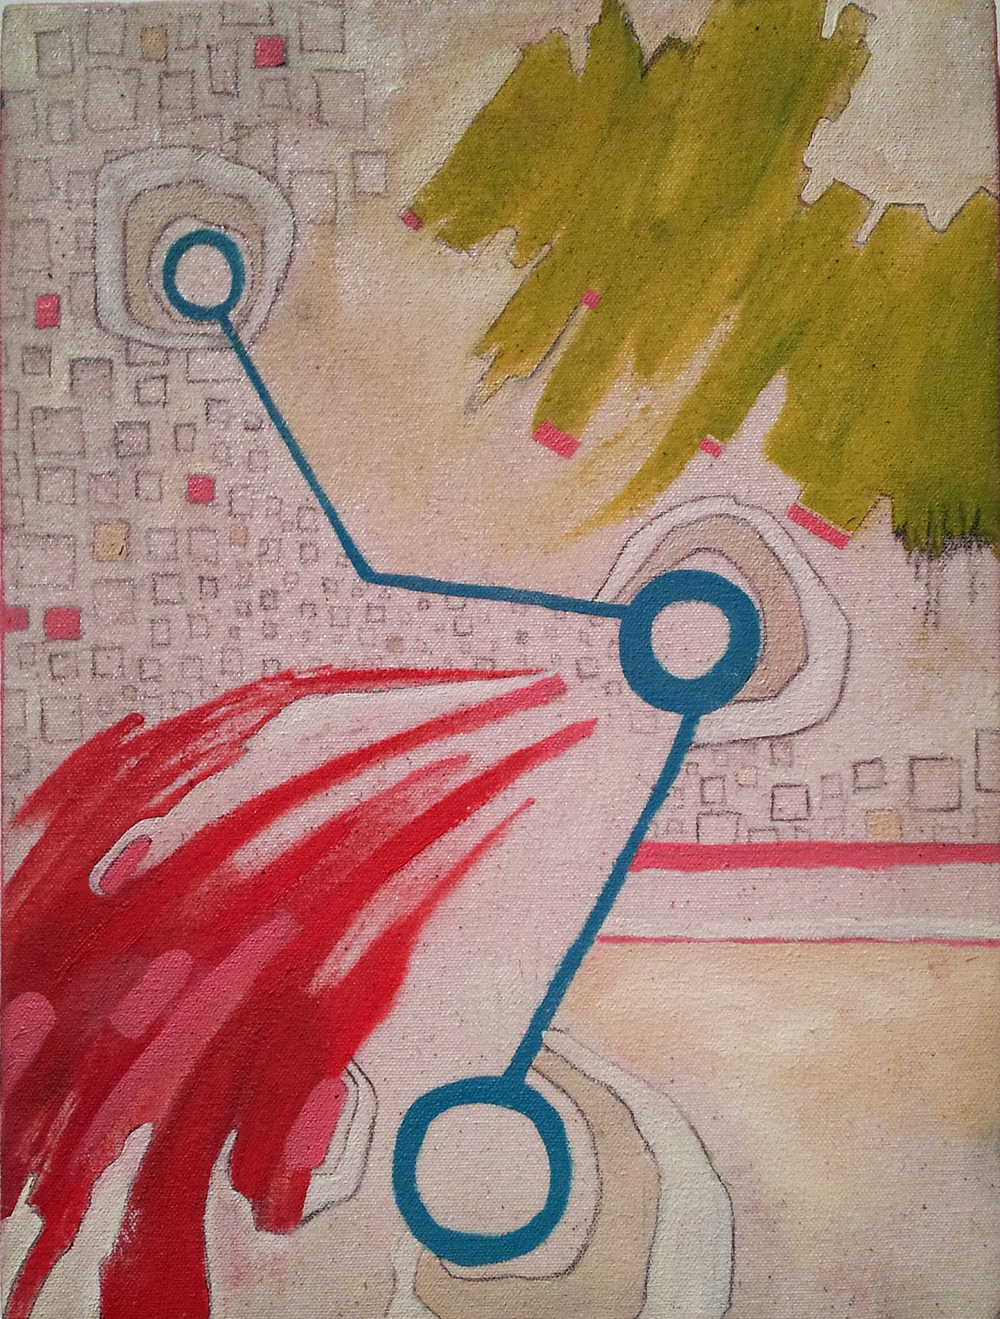 "Blip III 15x9"", oil and graphite on canvas, 2012, private collection"